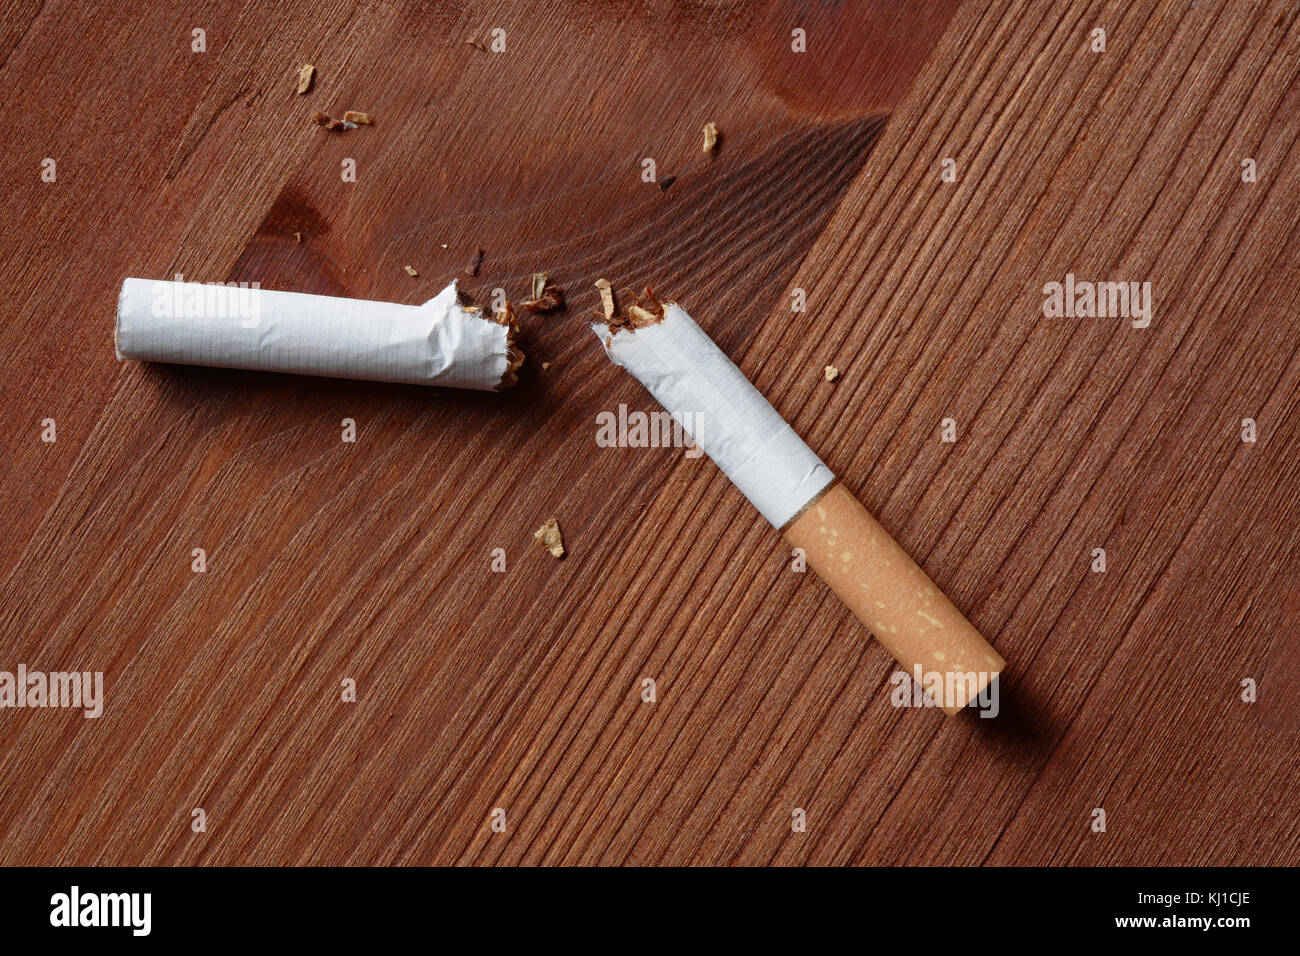 Broken cigarette closeup lying on wooden background - Stock Image